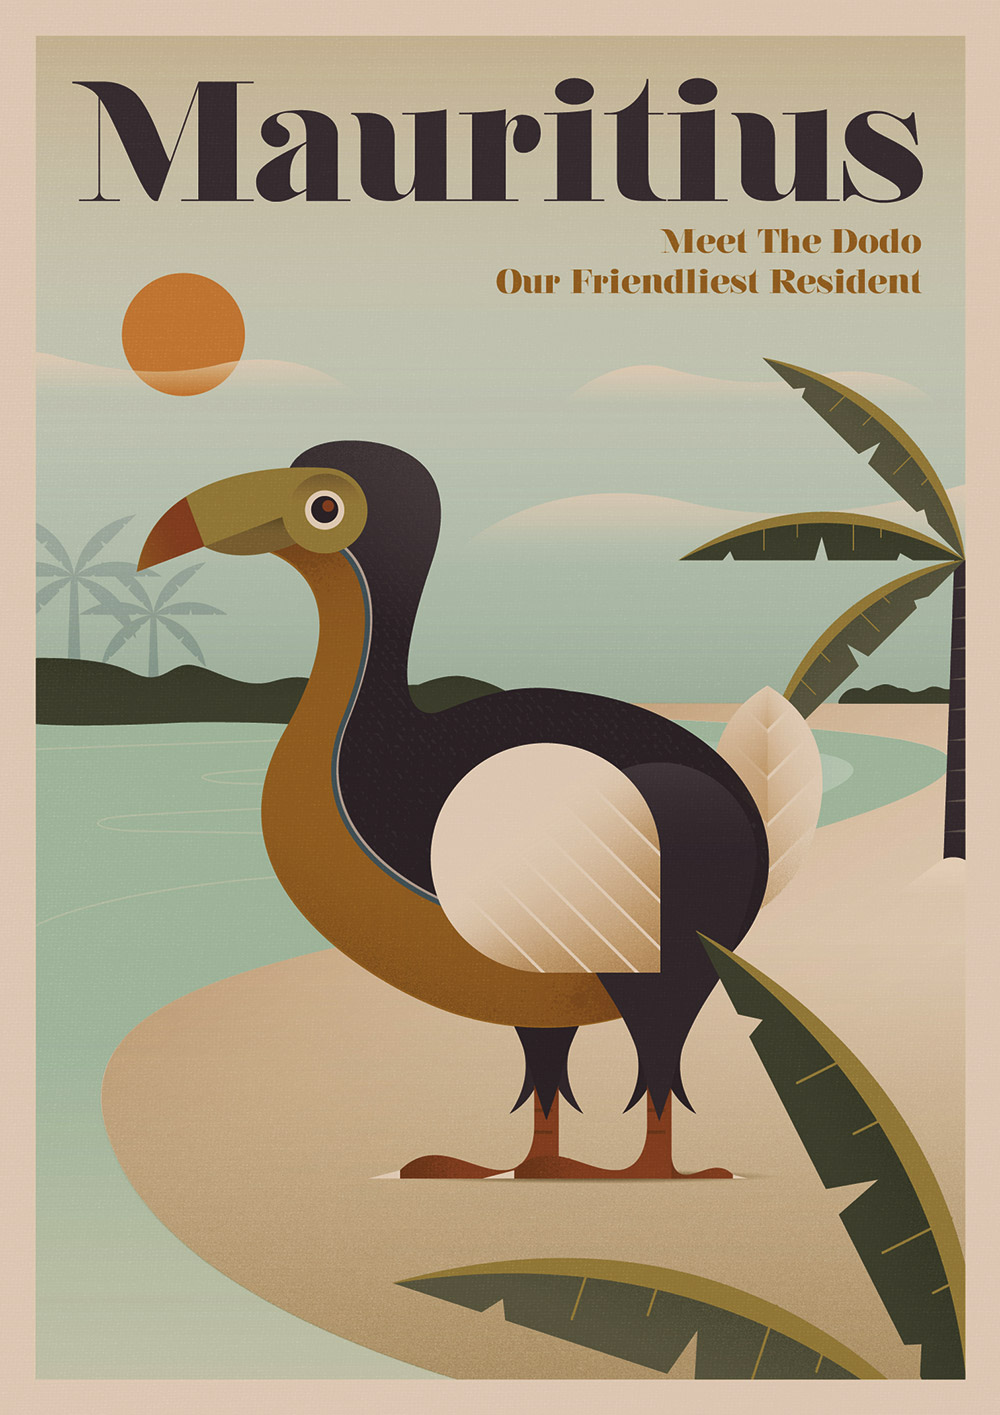 Dodo Visit Mauritius today, and you'll see many lovely sights, but not the unfortunate Dodo, which went extinct sometime after 1662.